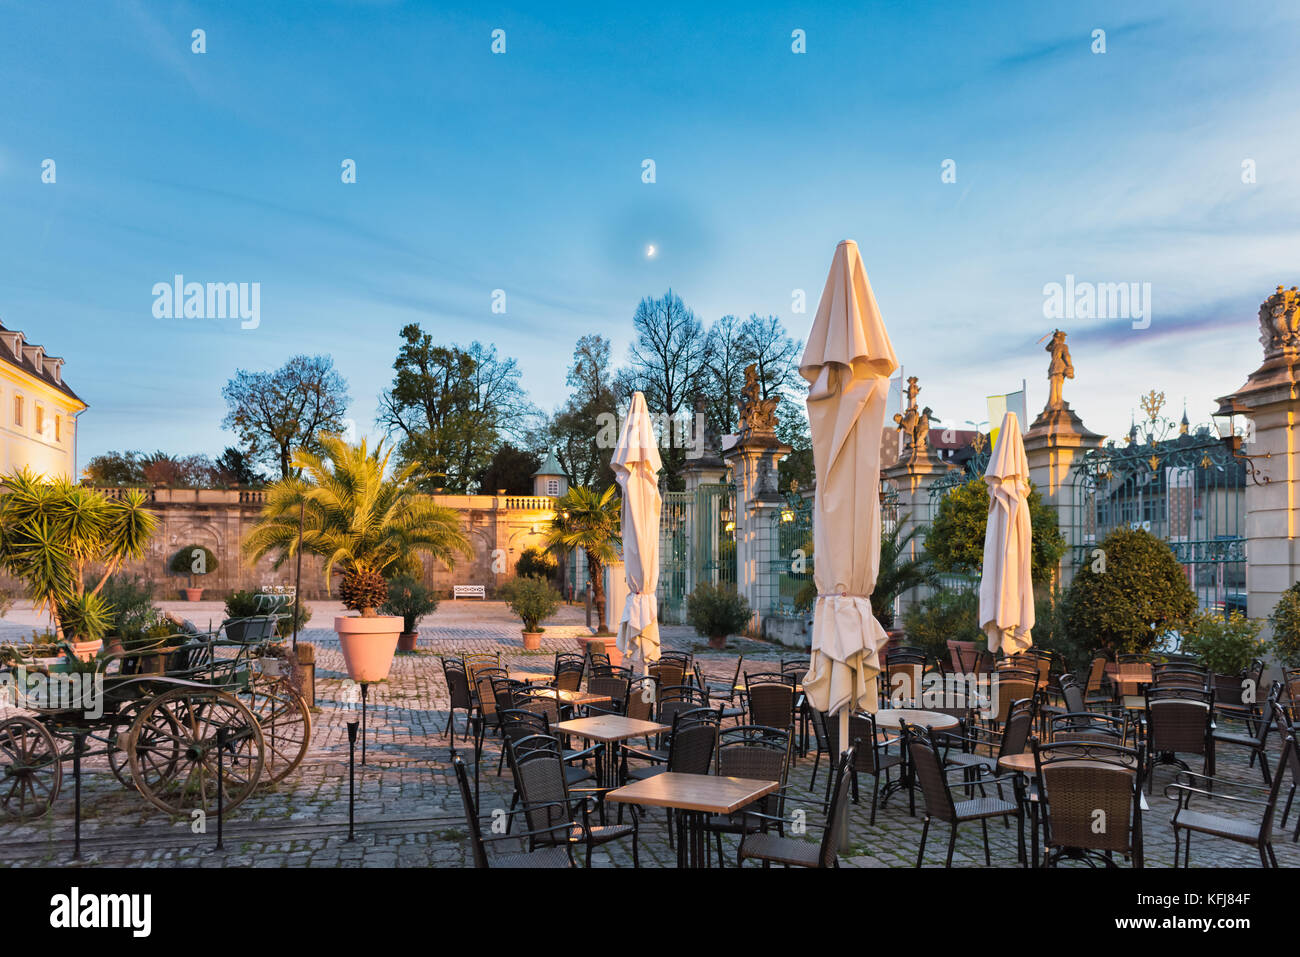 LUDWIGSBURG, GERMANY - OCTOBER 25, 2017: The castle cafe invites for a rest to enjoy the scenic light of the blue - Stock Image